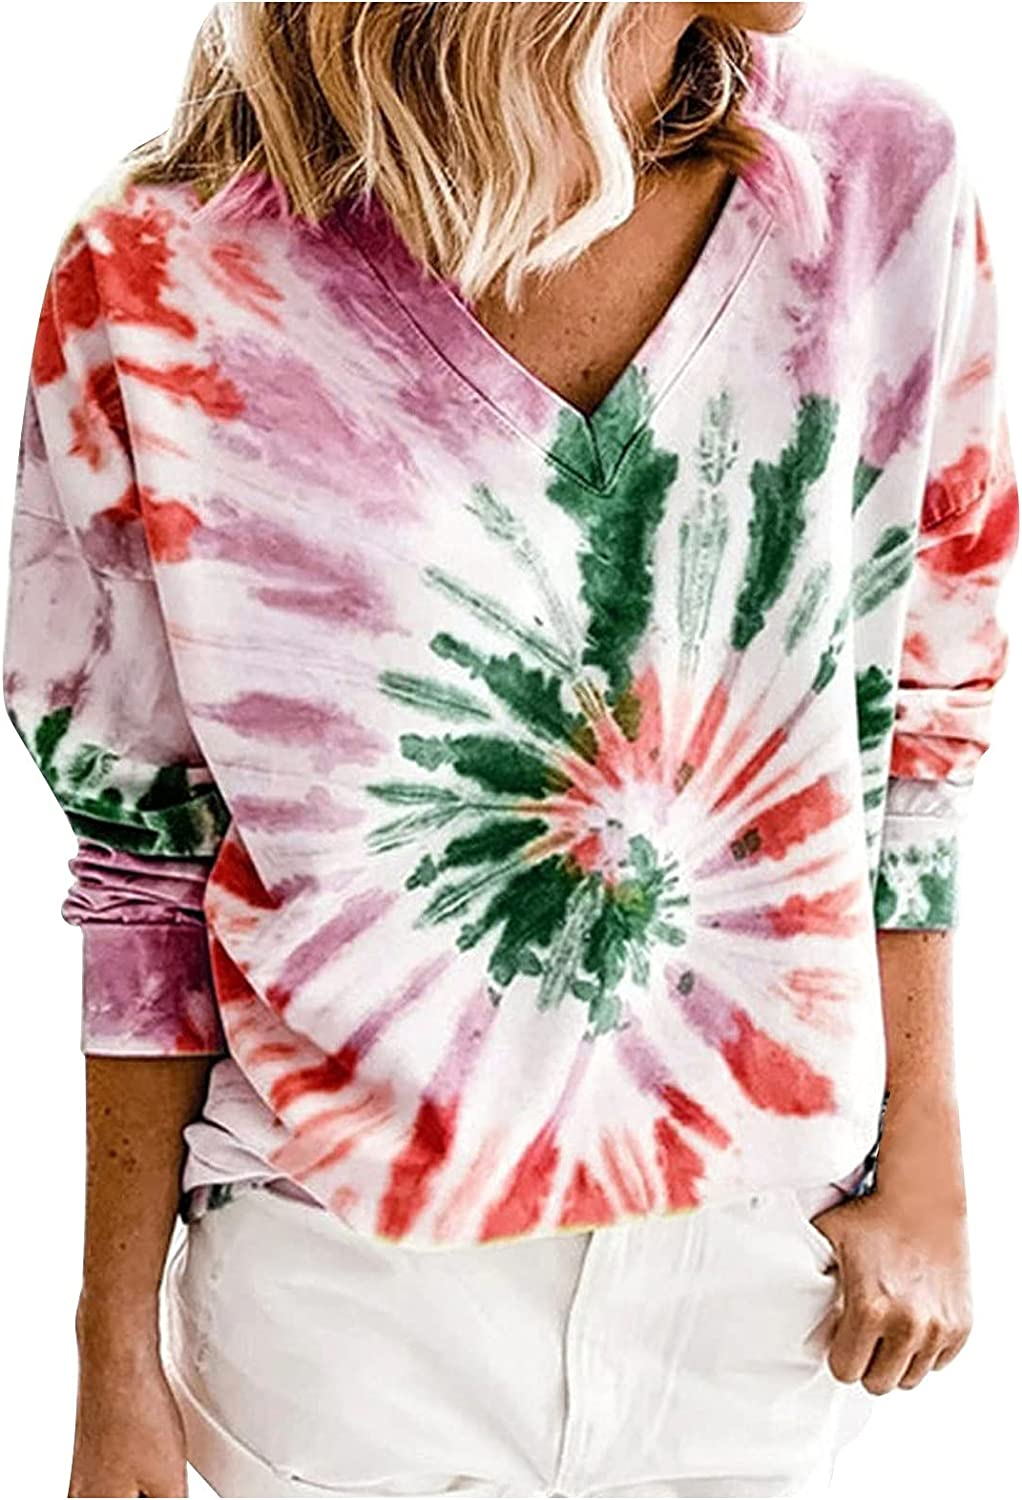 Women's Tie Dye Button Loose Strip Printing Tops V Neck Out Long Sleeve Shirts Hoodies Pullover Sweatshirts